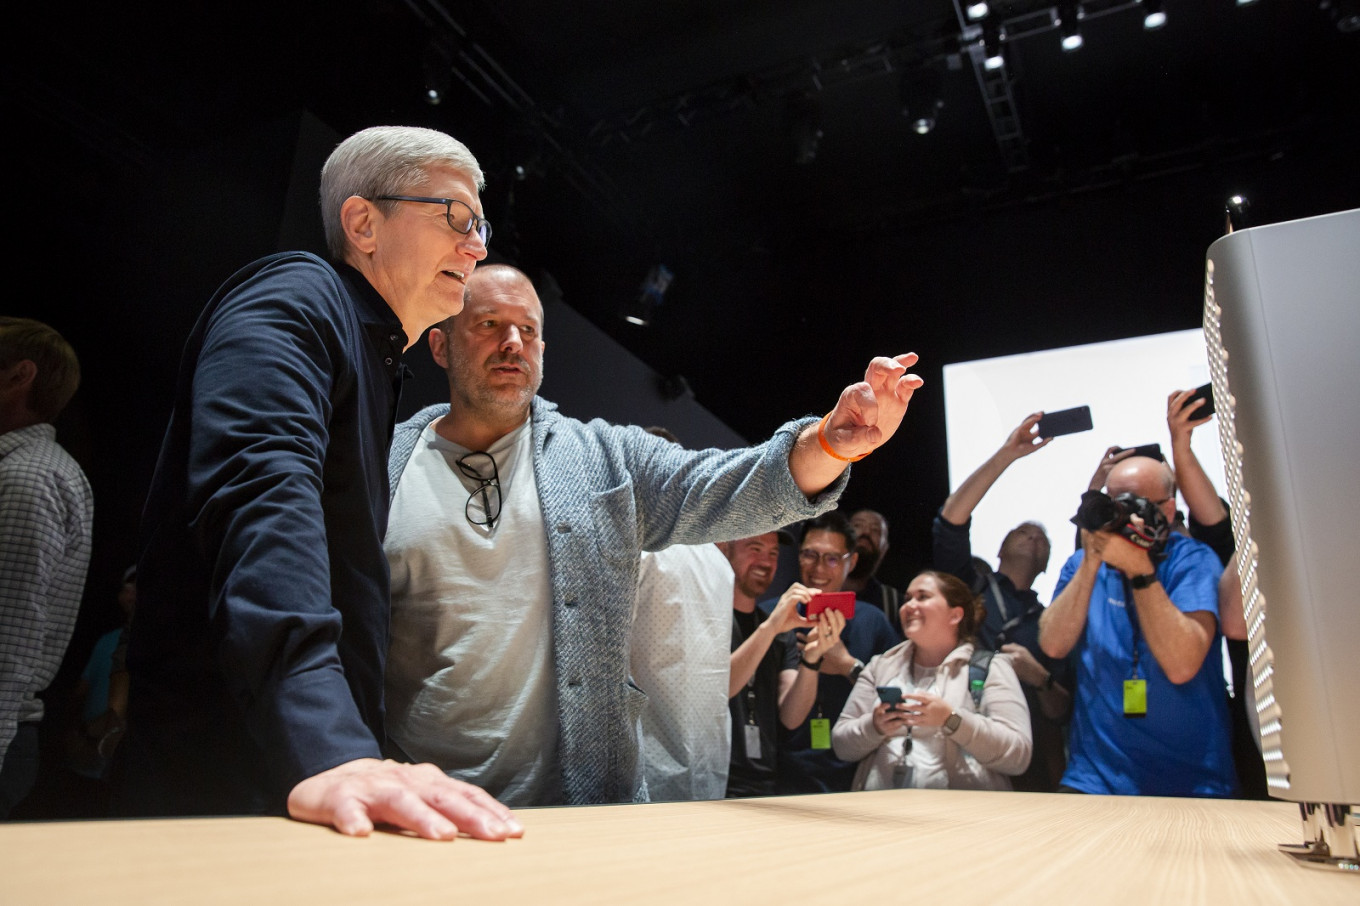 Apple to hold developer conference June 22, later than usual - The Jakarta Post